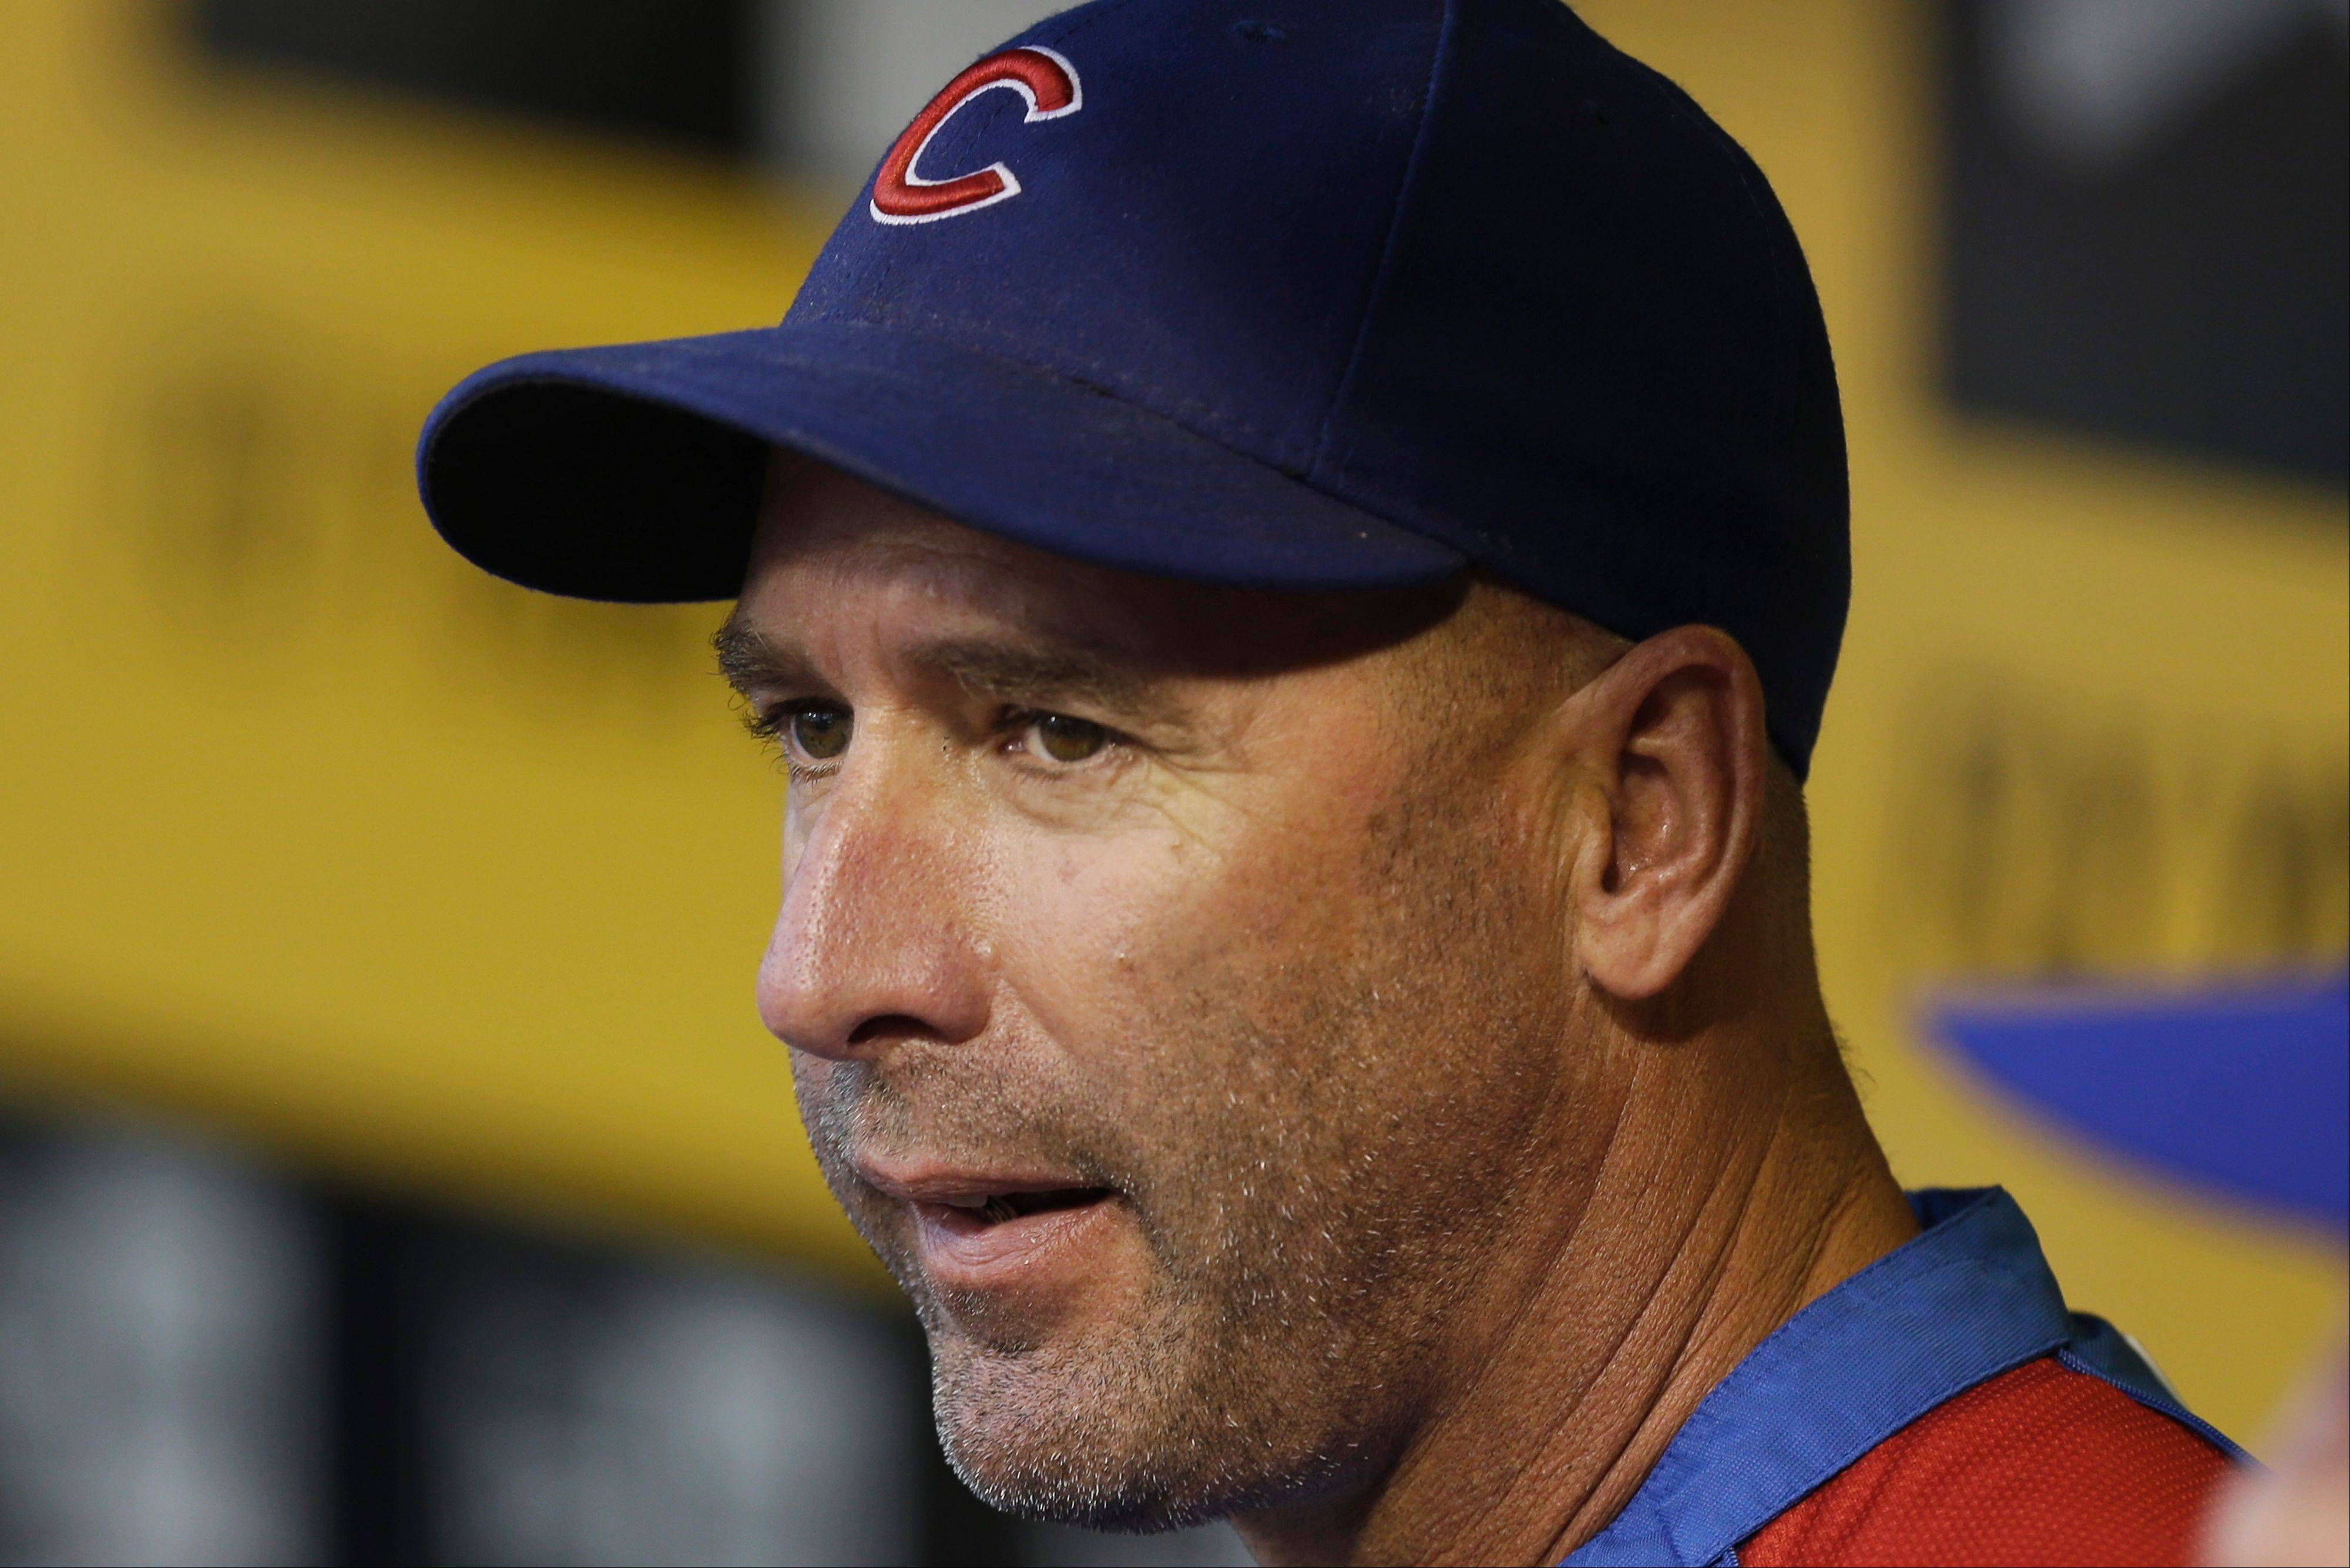 Cubs manager Dale Sveum has received no vote of confidence from his bosses.